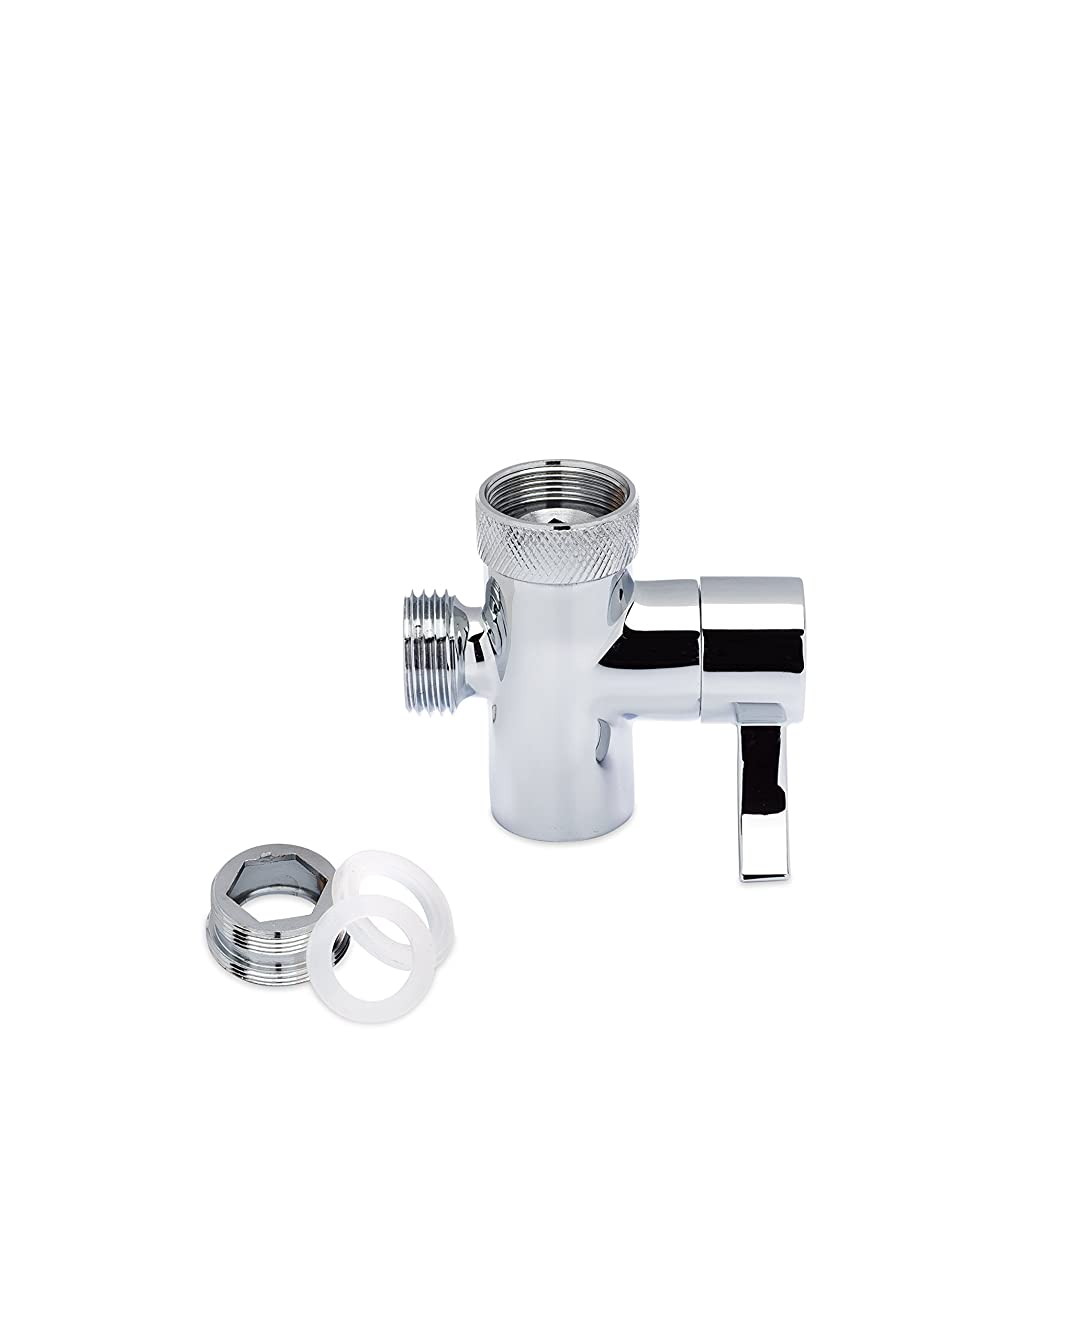 SmarterFresh Faucet Diverter Valve With Aerator and Male Threaded Adapter, Faucet Adapter for Hose Attachment, Faucet Connector for Water Diversion